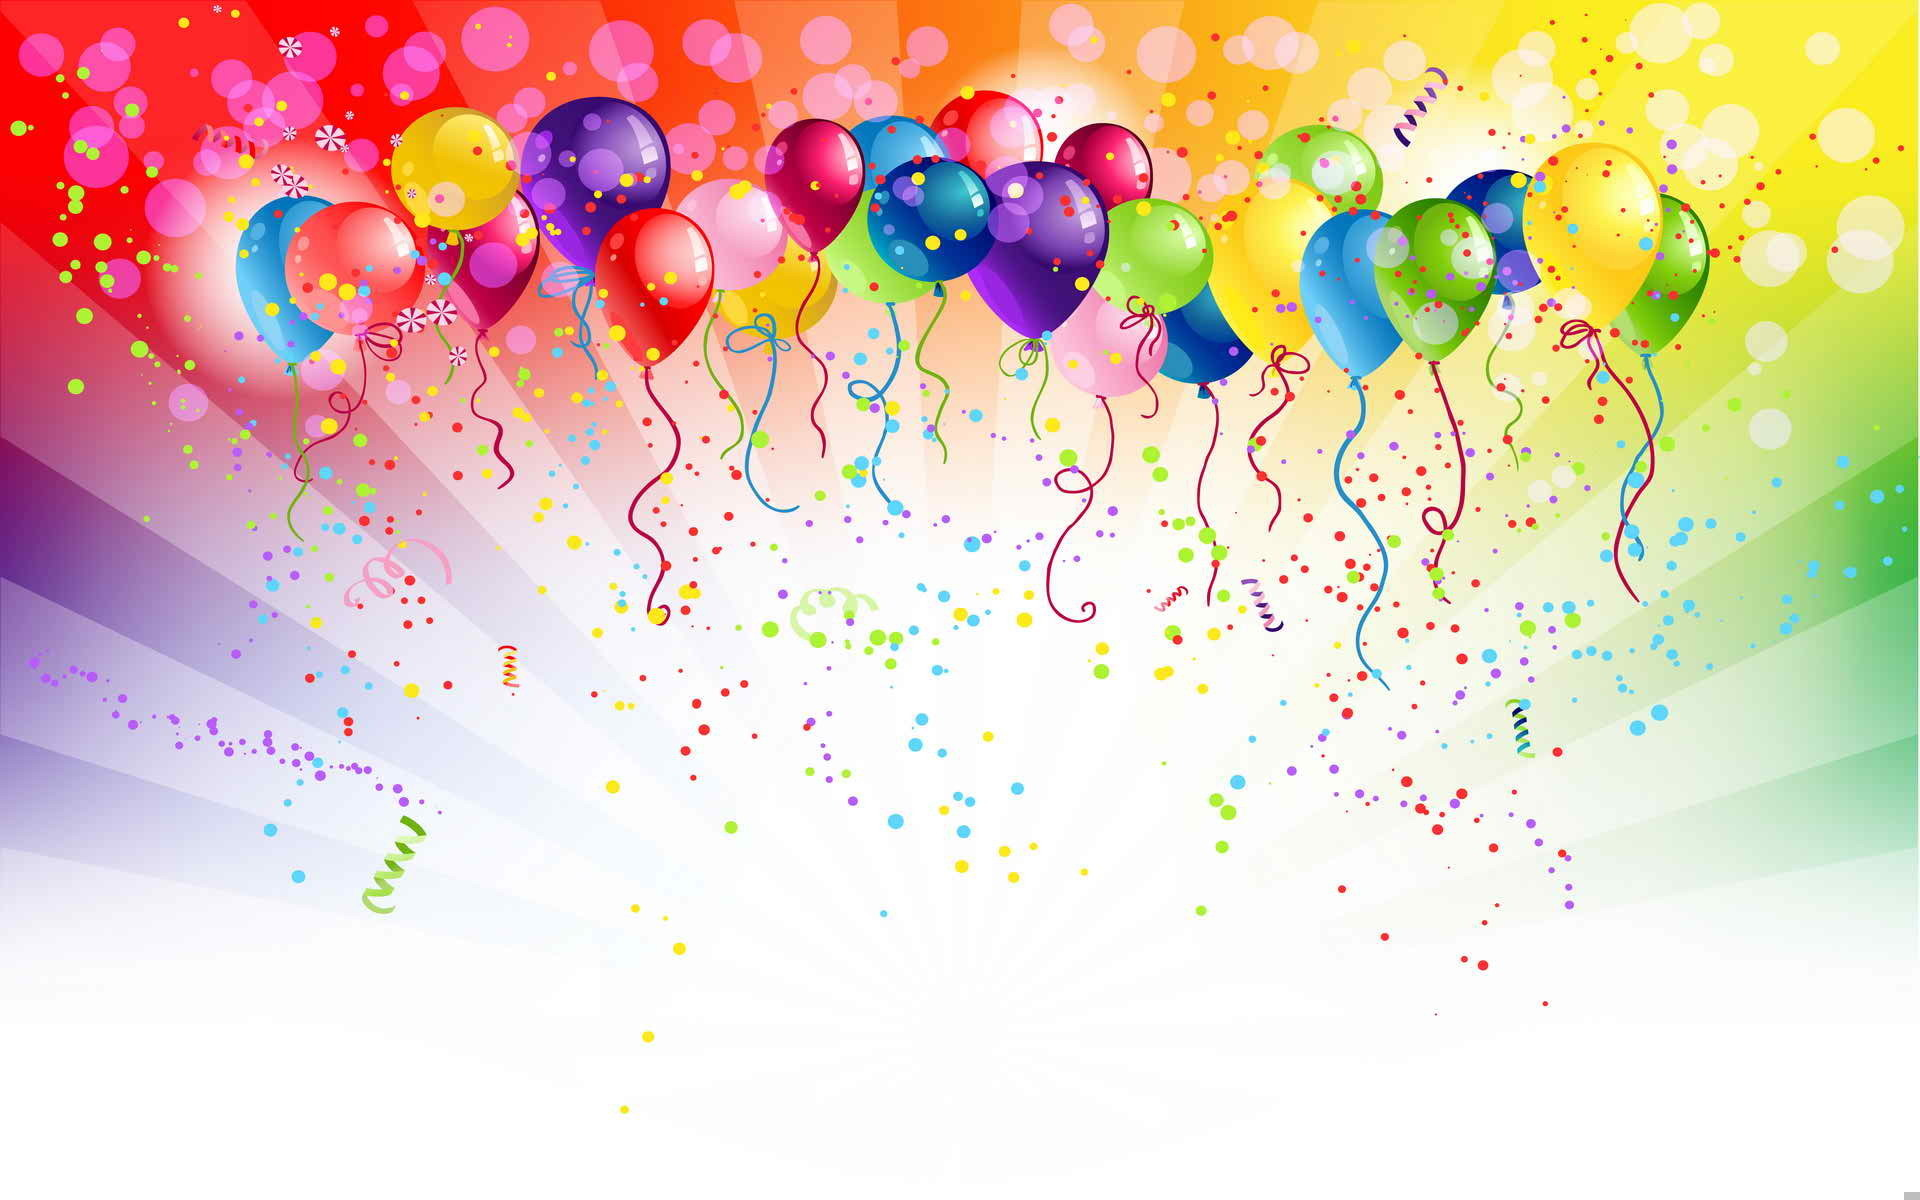 birthday greetings background image ; 936632-birthday-card-backgrounds-1920x1200-for-hd